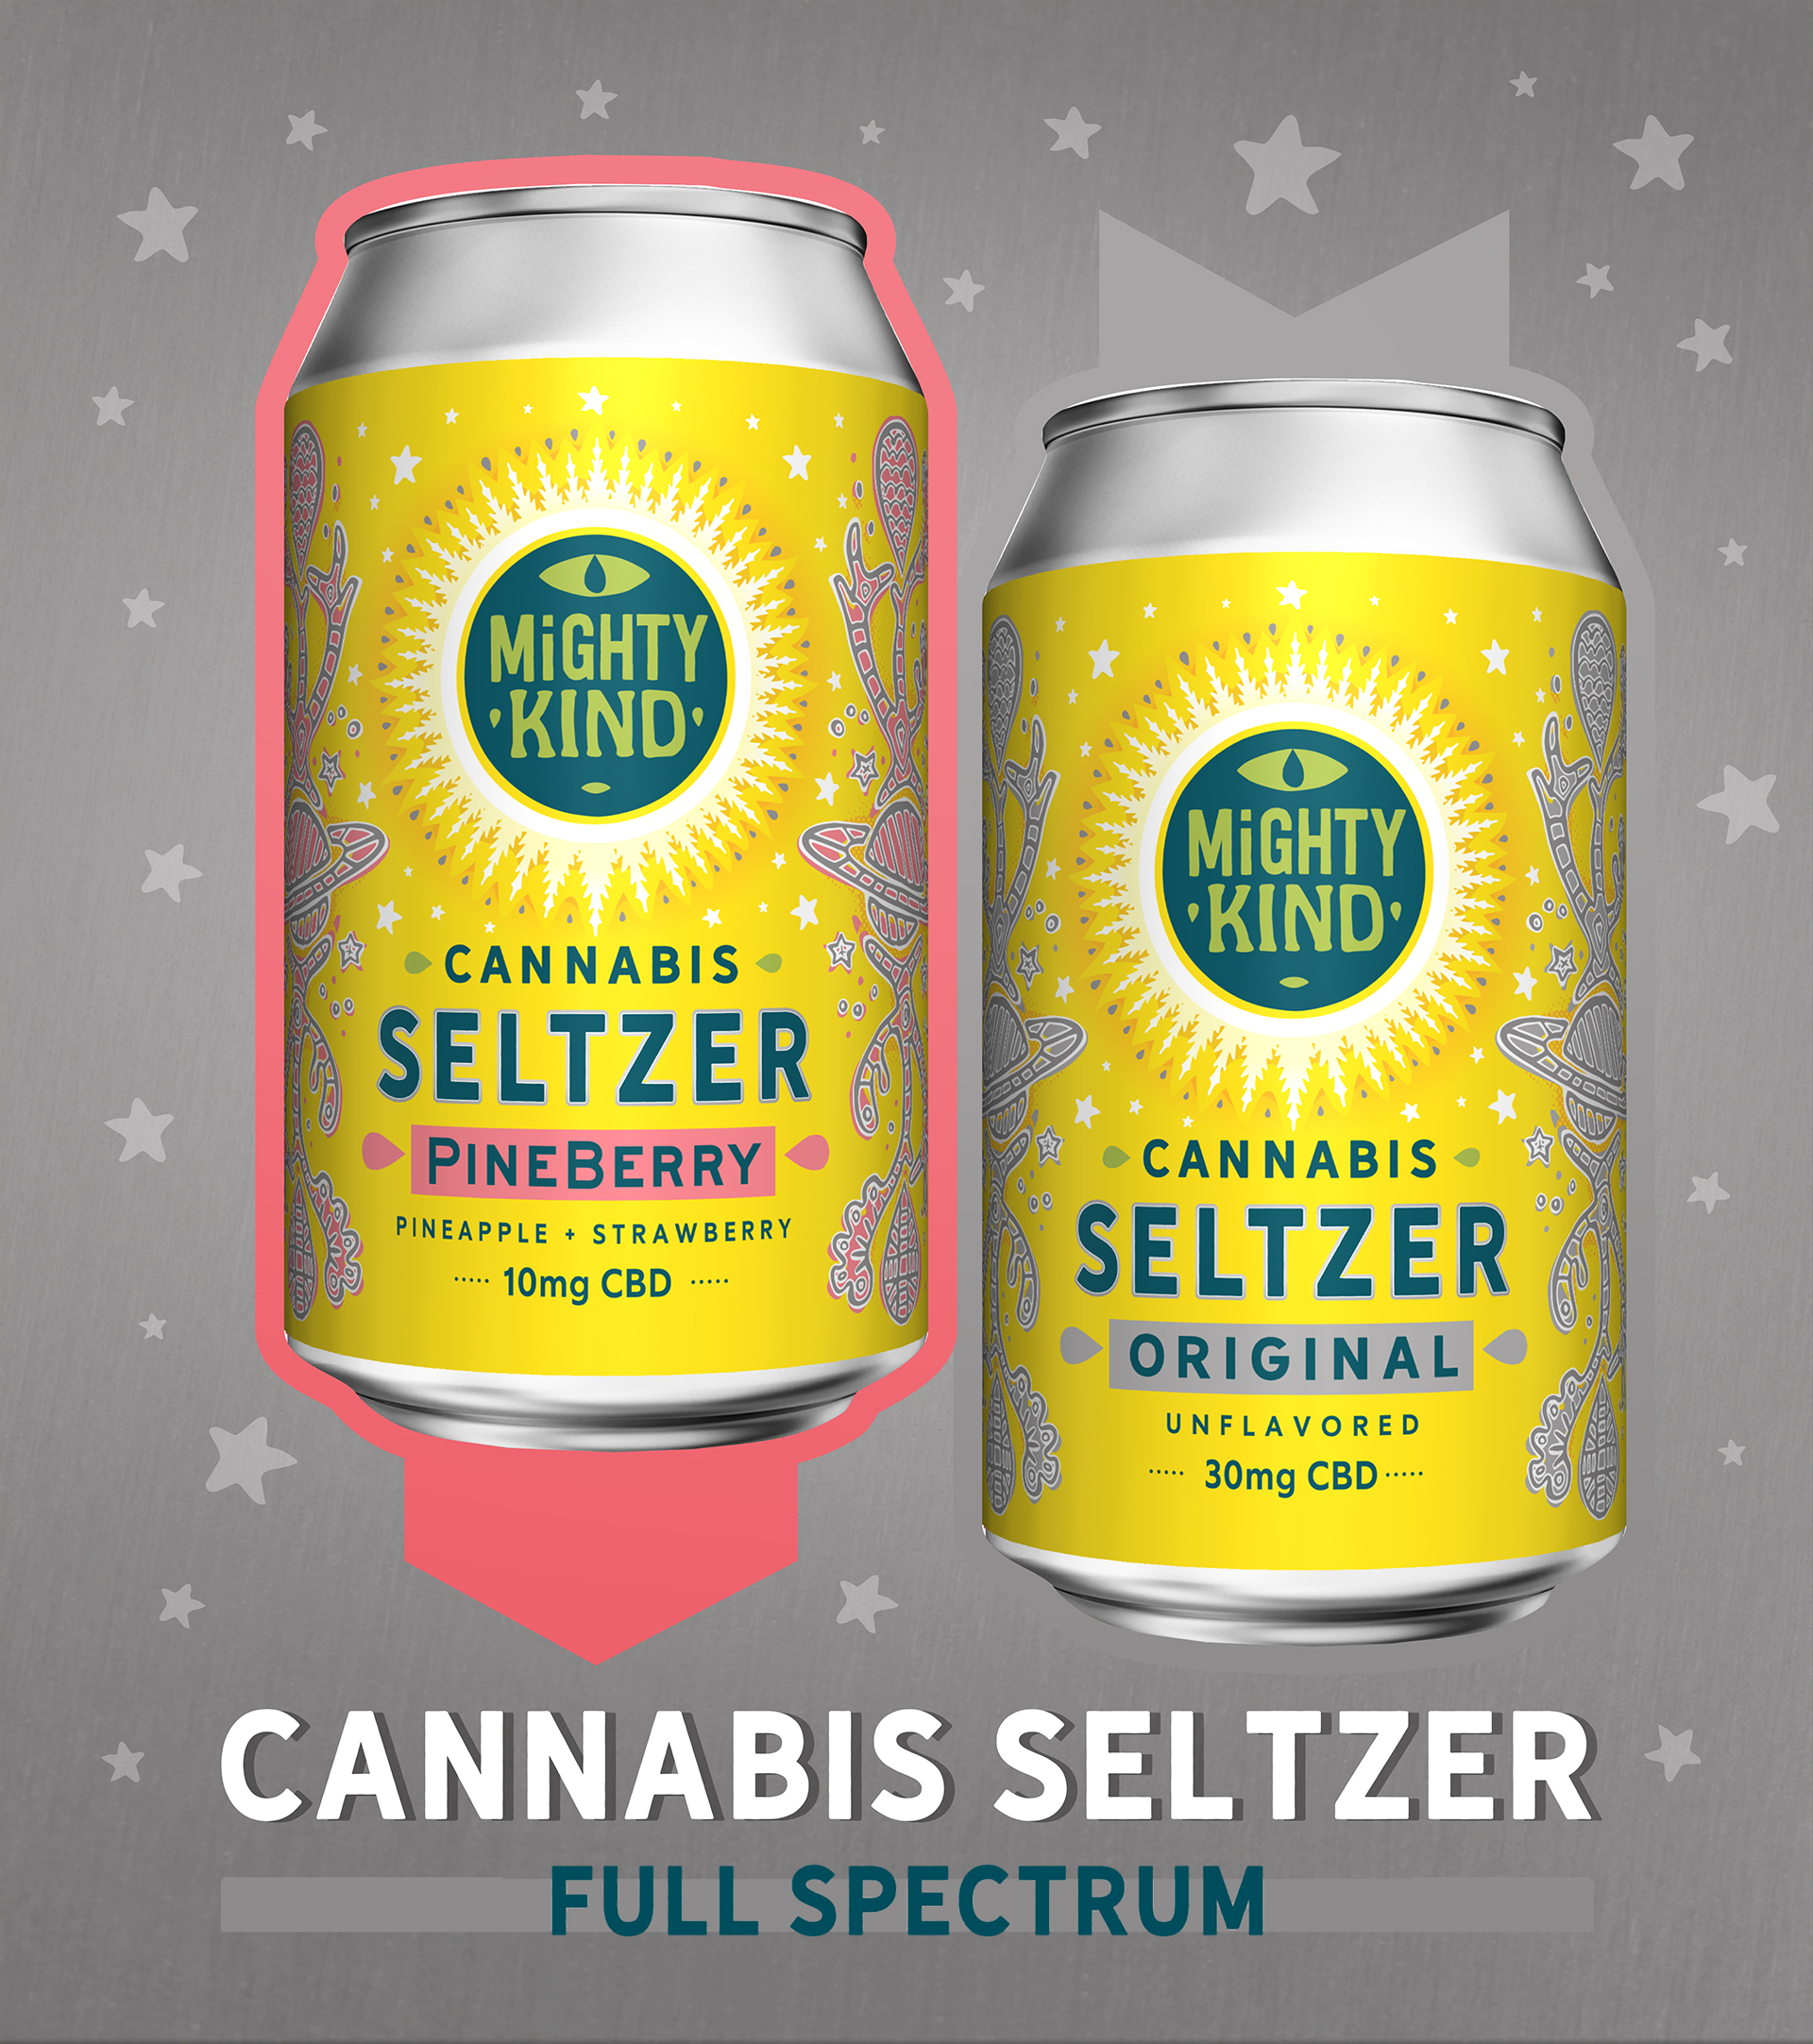 Mighty Kind Cannabis Seltzer